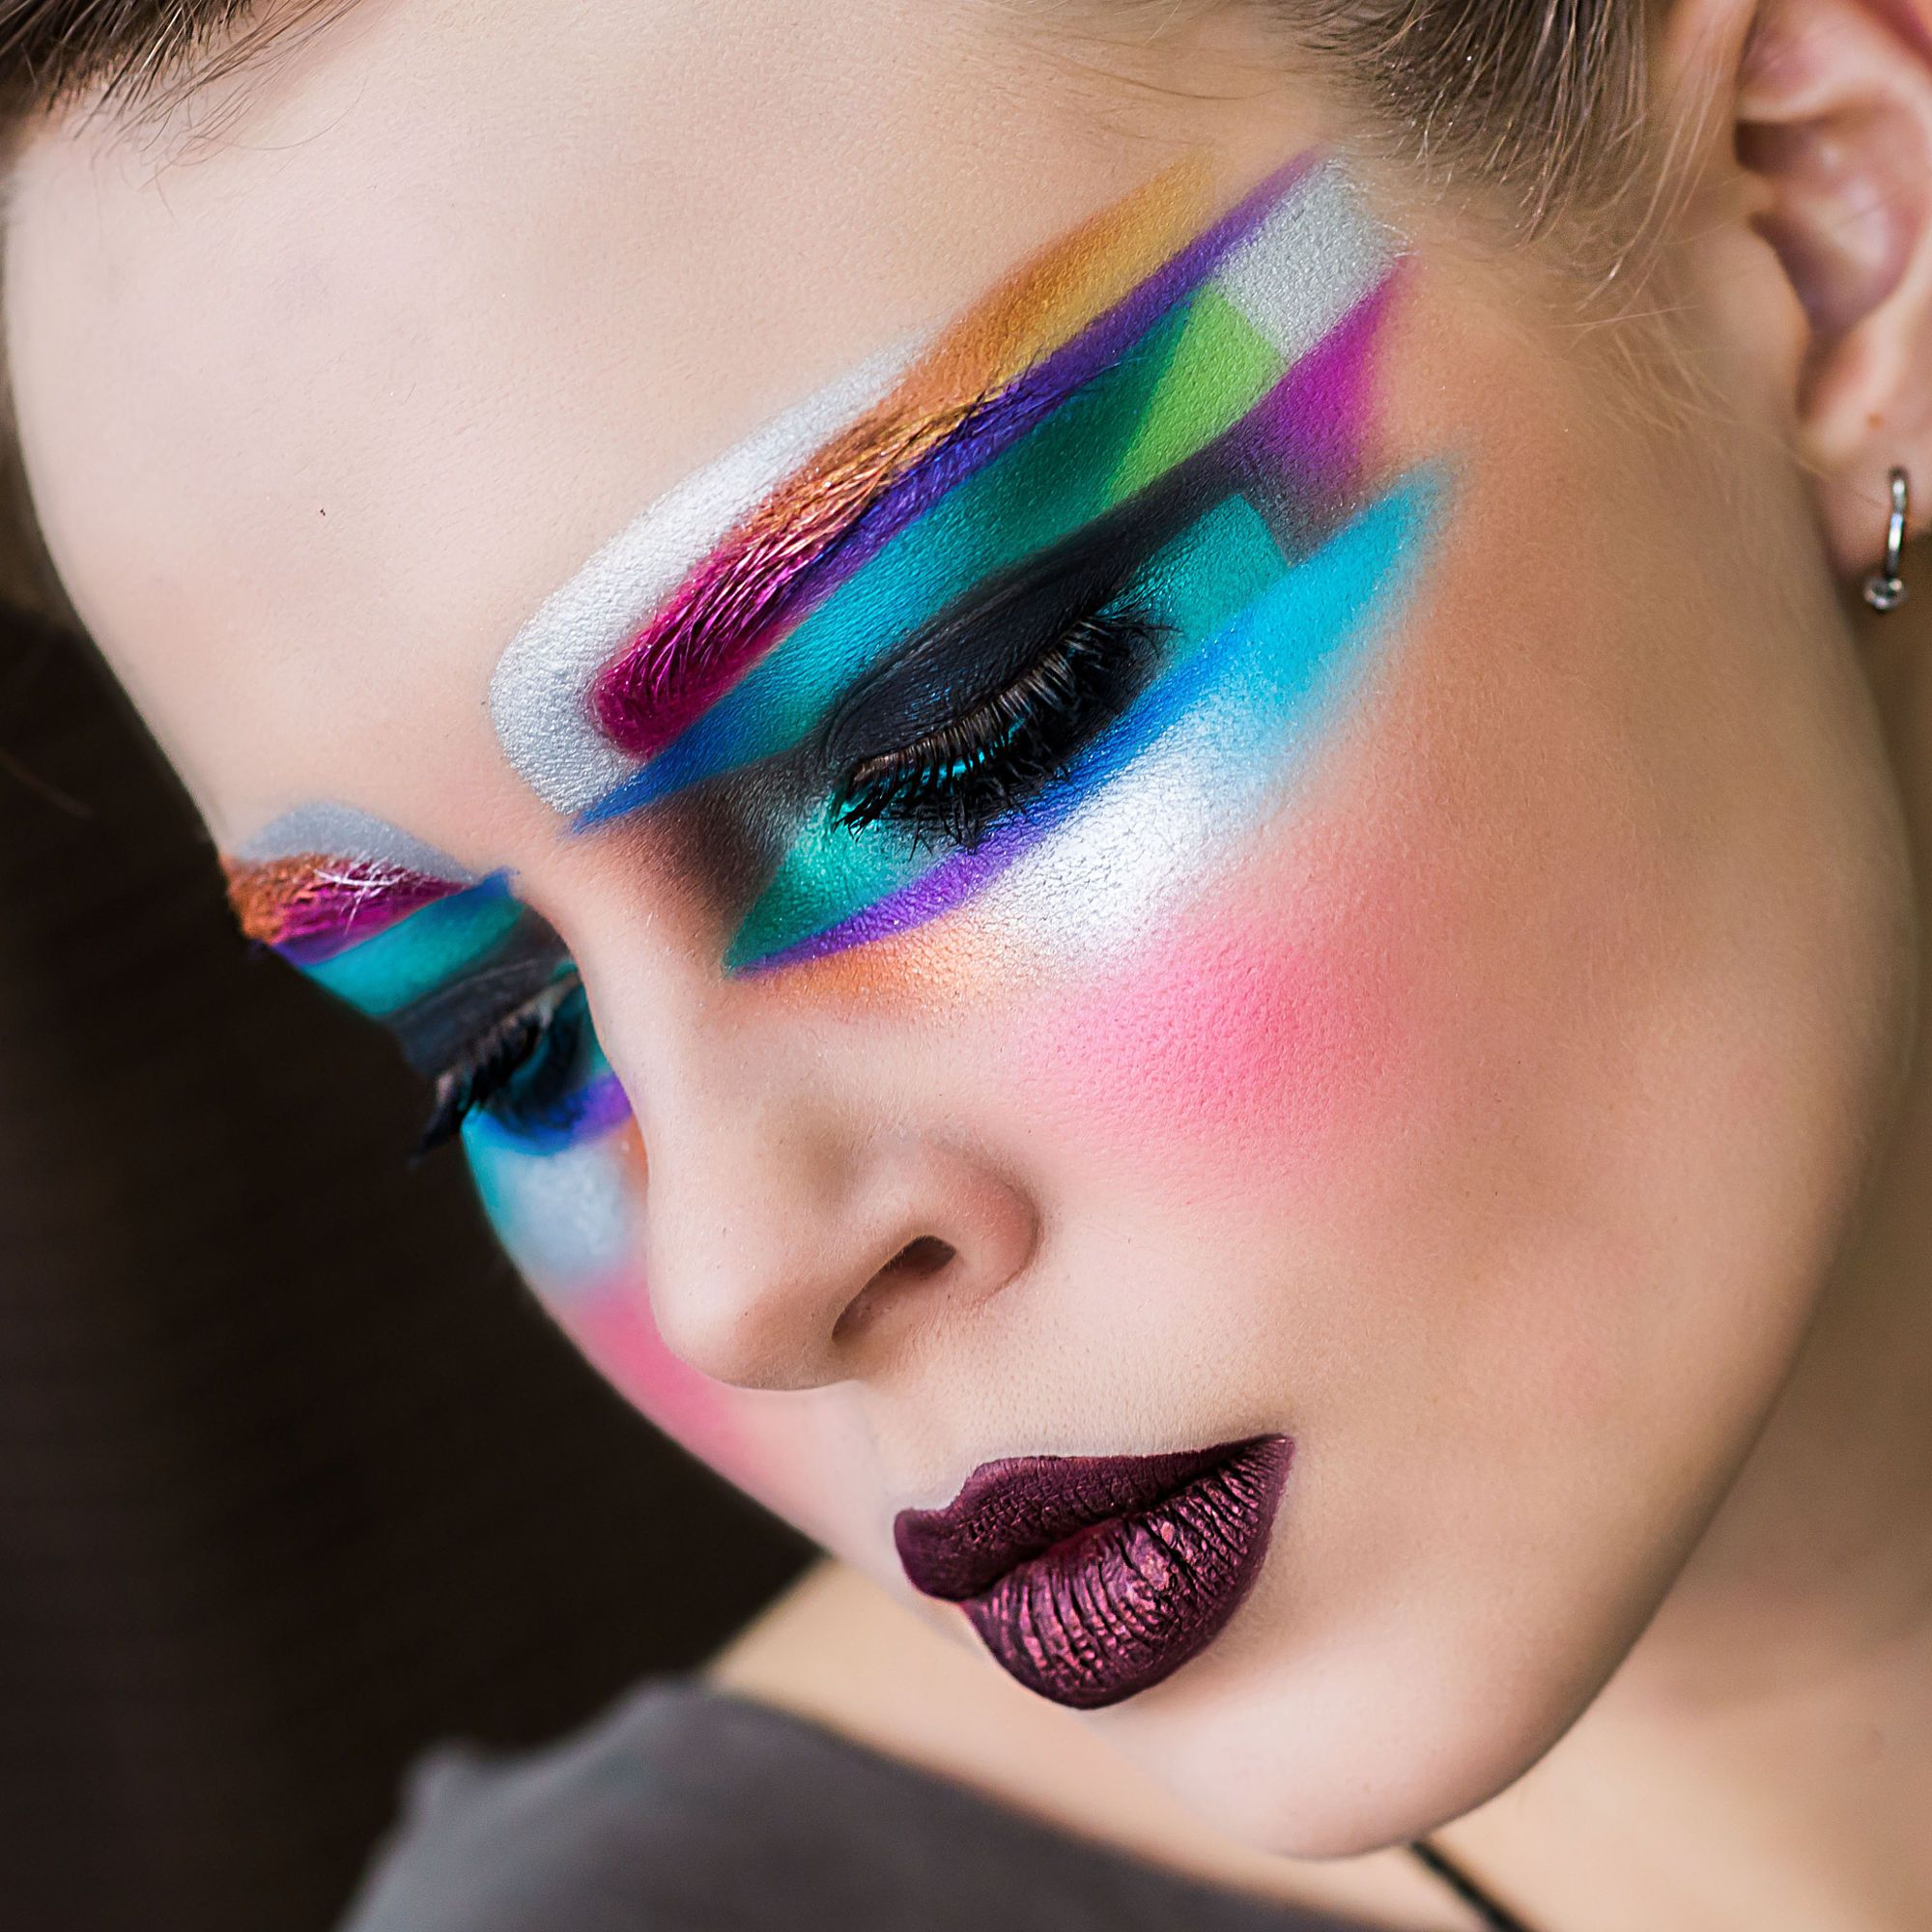 extreme makeup pictures - 736×736